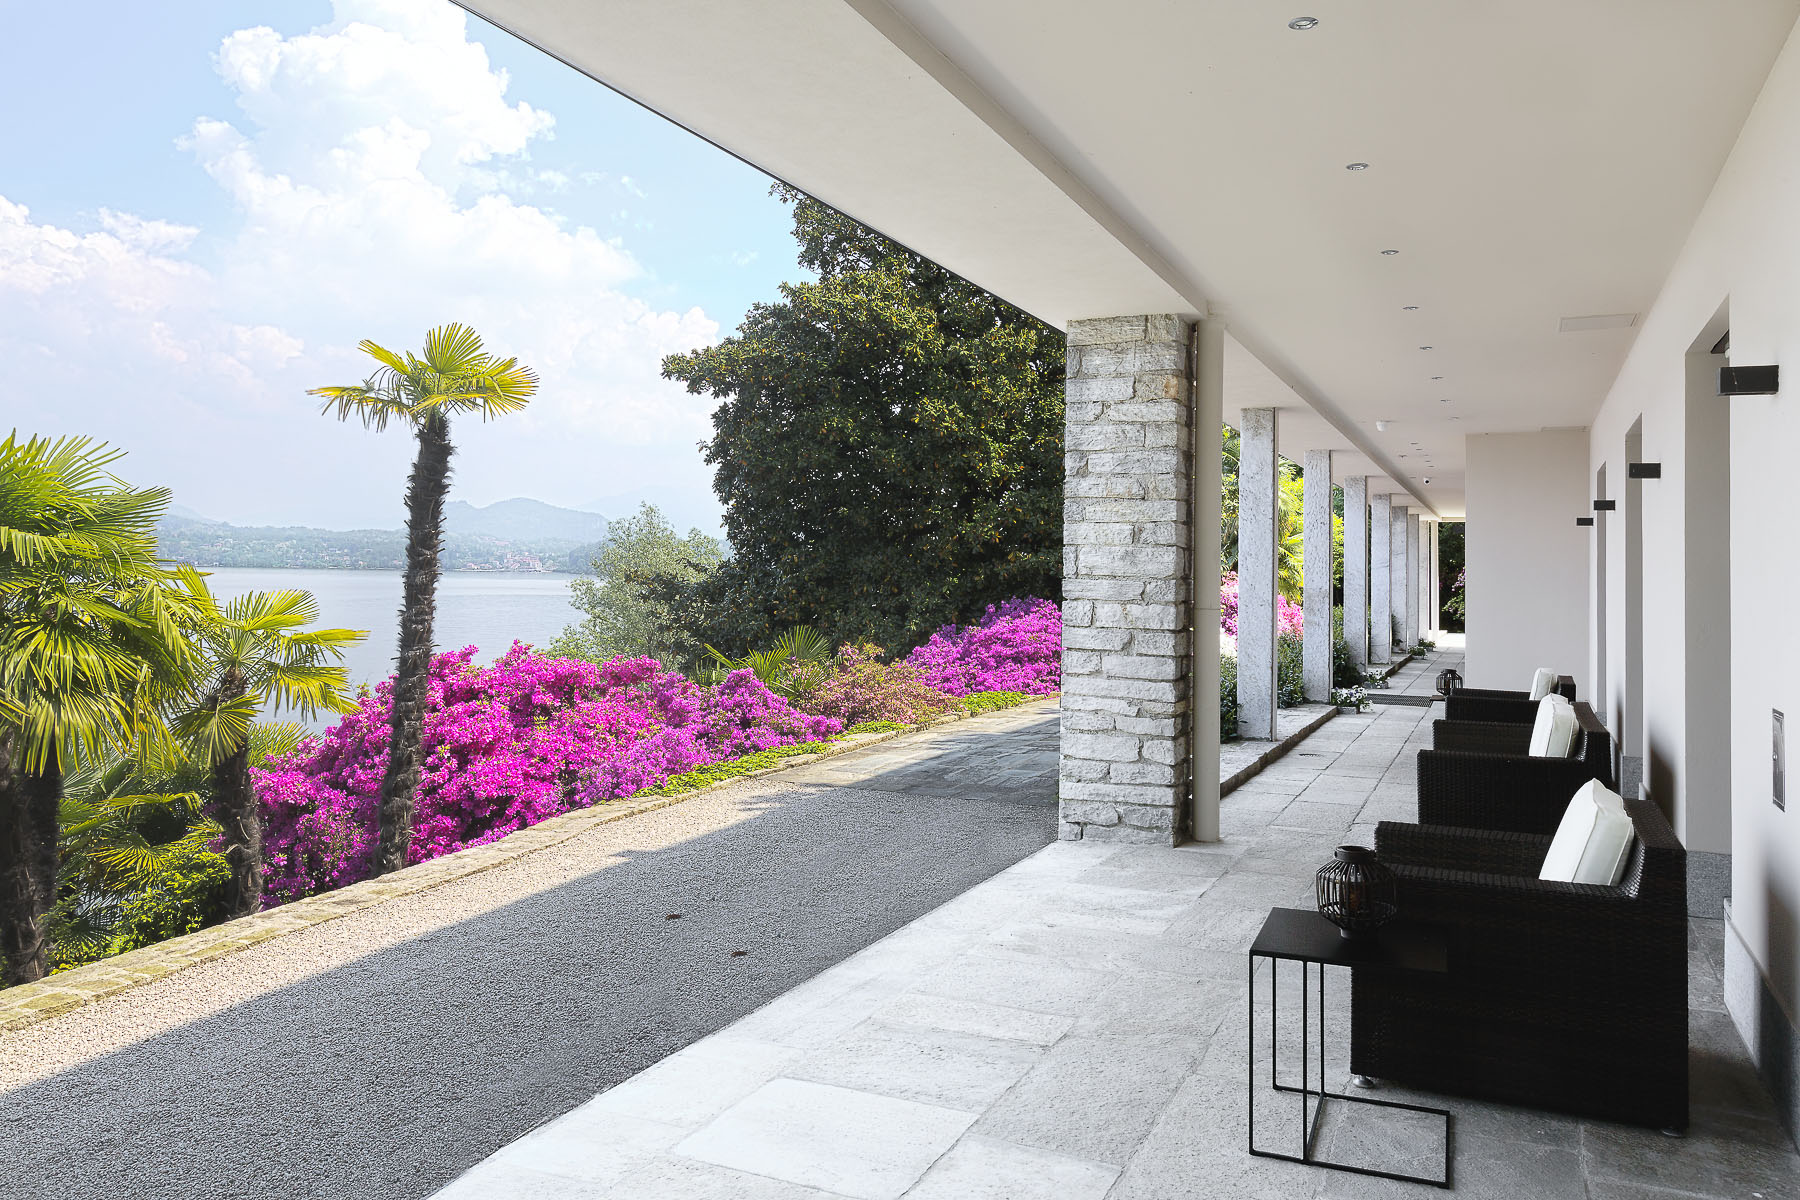 Additional photo for property listing at An alluring lakefront villa in the enchanting Stresa  Stresa, Verbano Cusio Ossola 28838 Italy